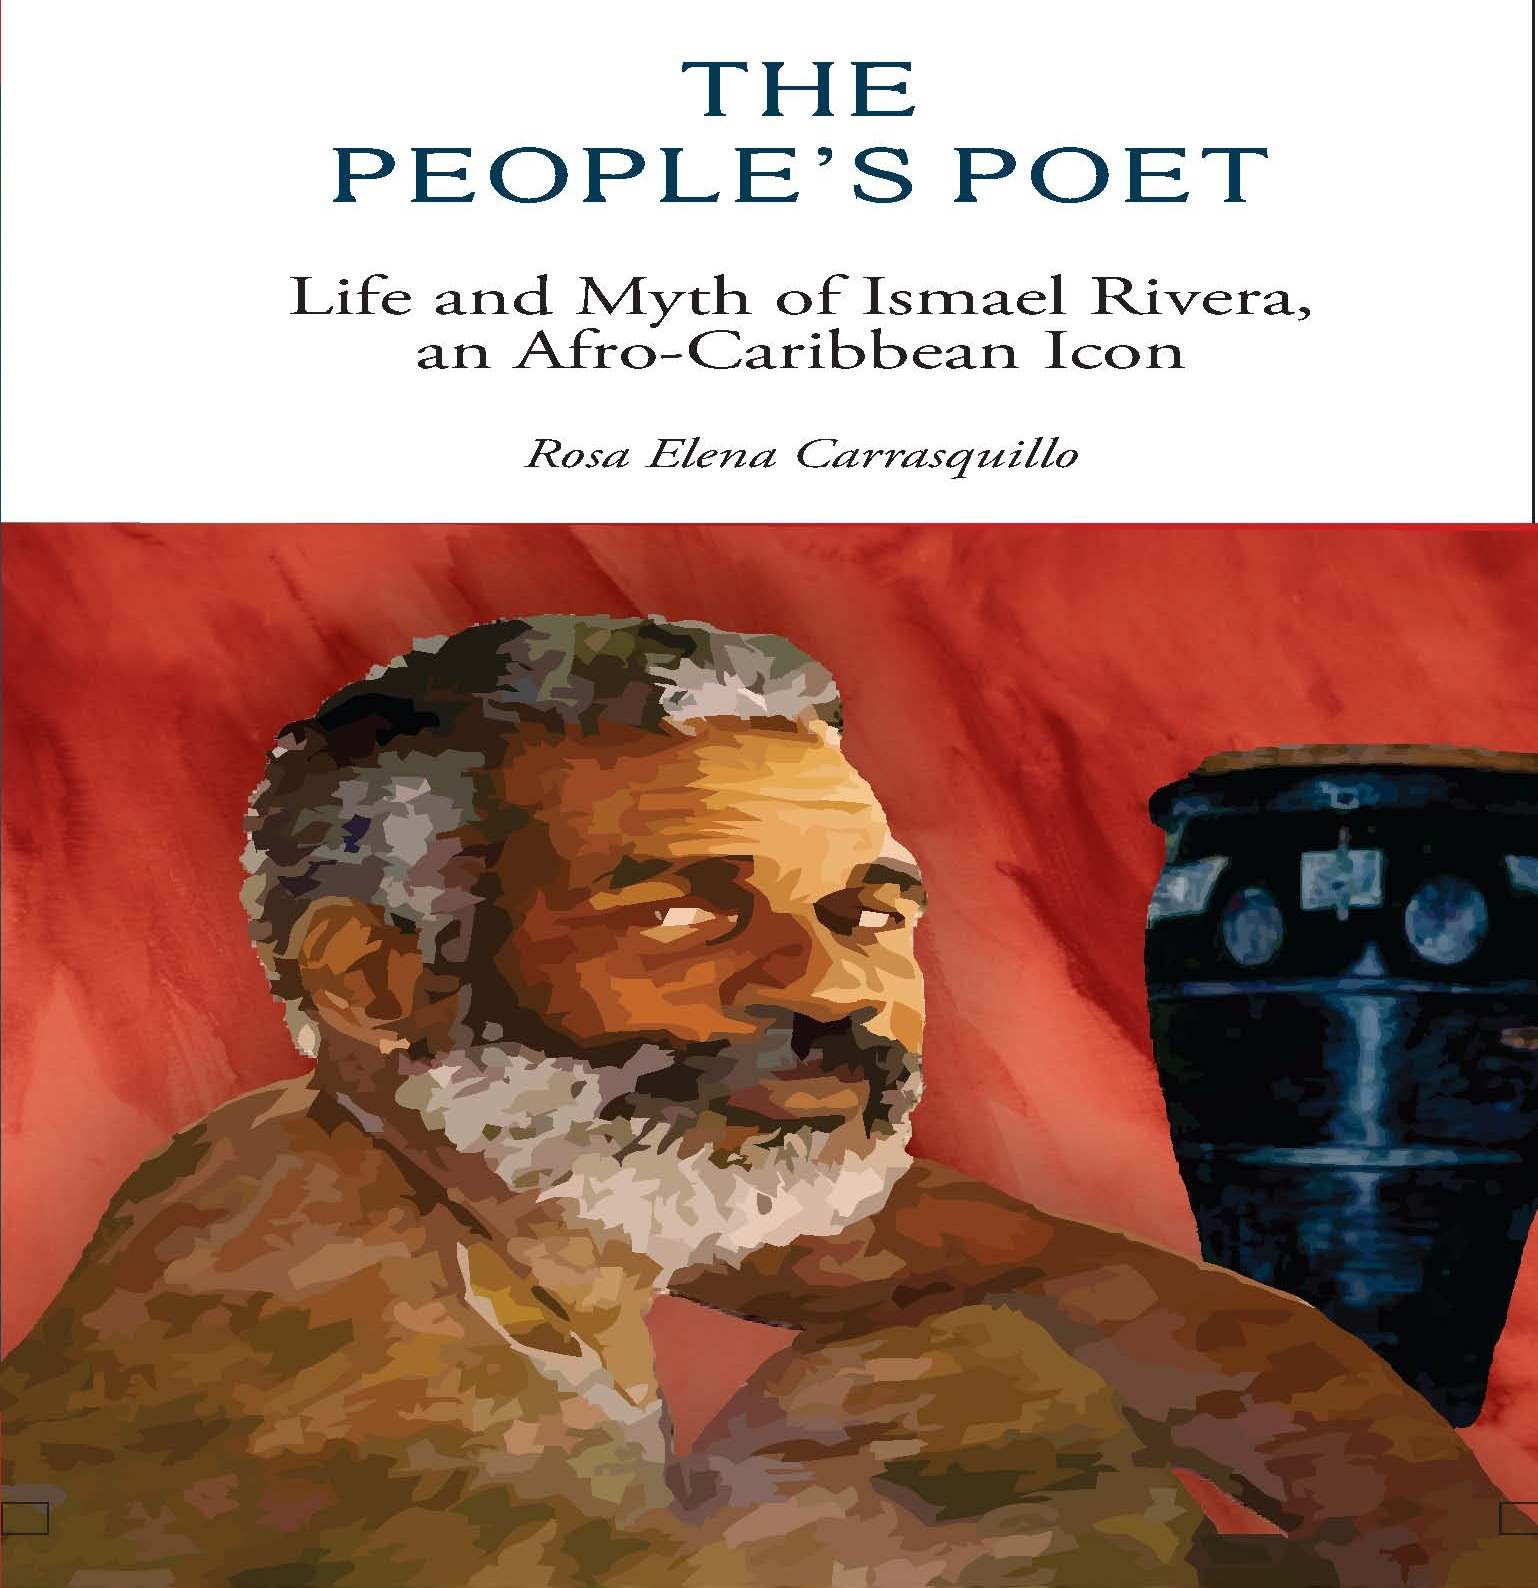 The People's Poet : Life and Myth of Ismael Riviera, an Afro  Caribbean Icon